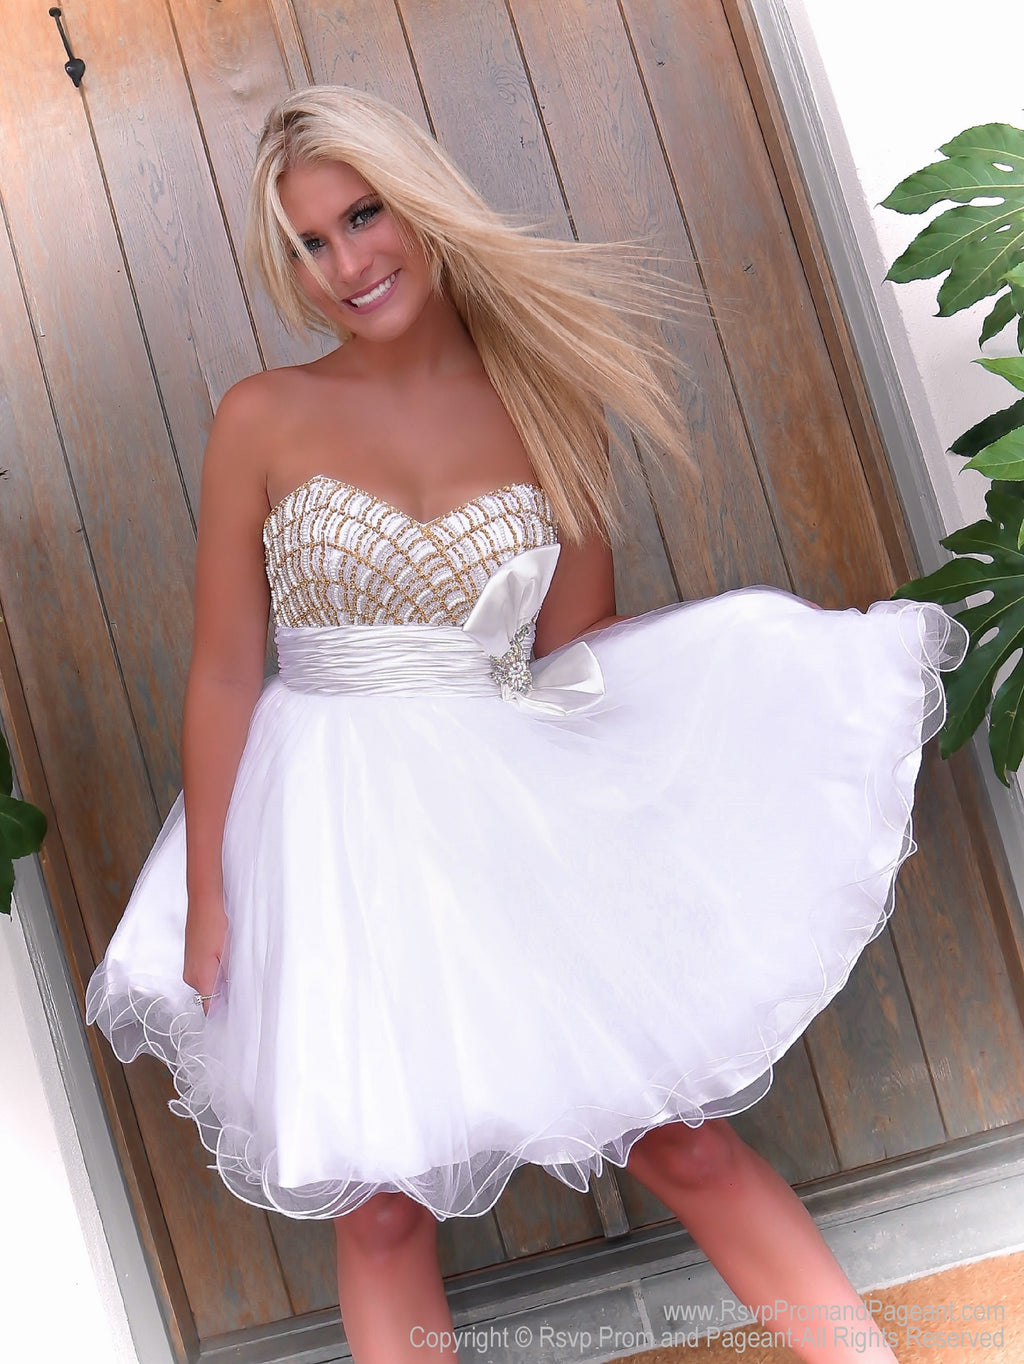 Pretty blonde model in Darling White Short Homecoming Dress with Gold Bodice and Bow at Rsvp Prom and Pageant, the best prom dress store in Atlanta, Georgia